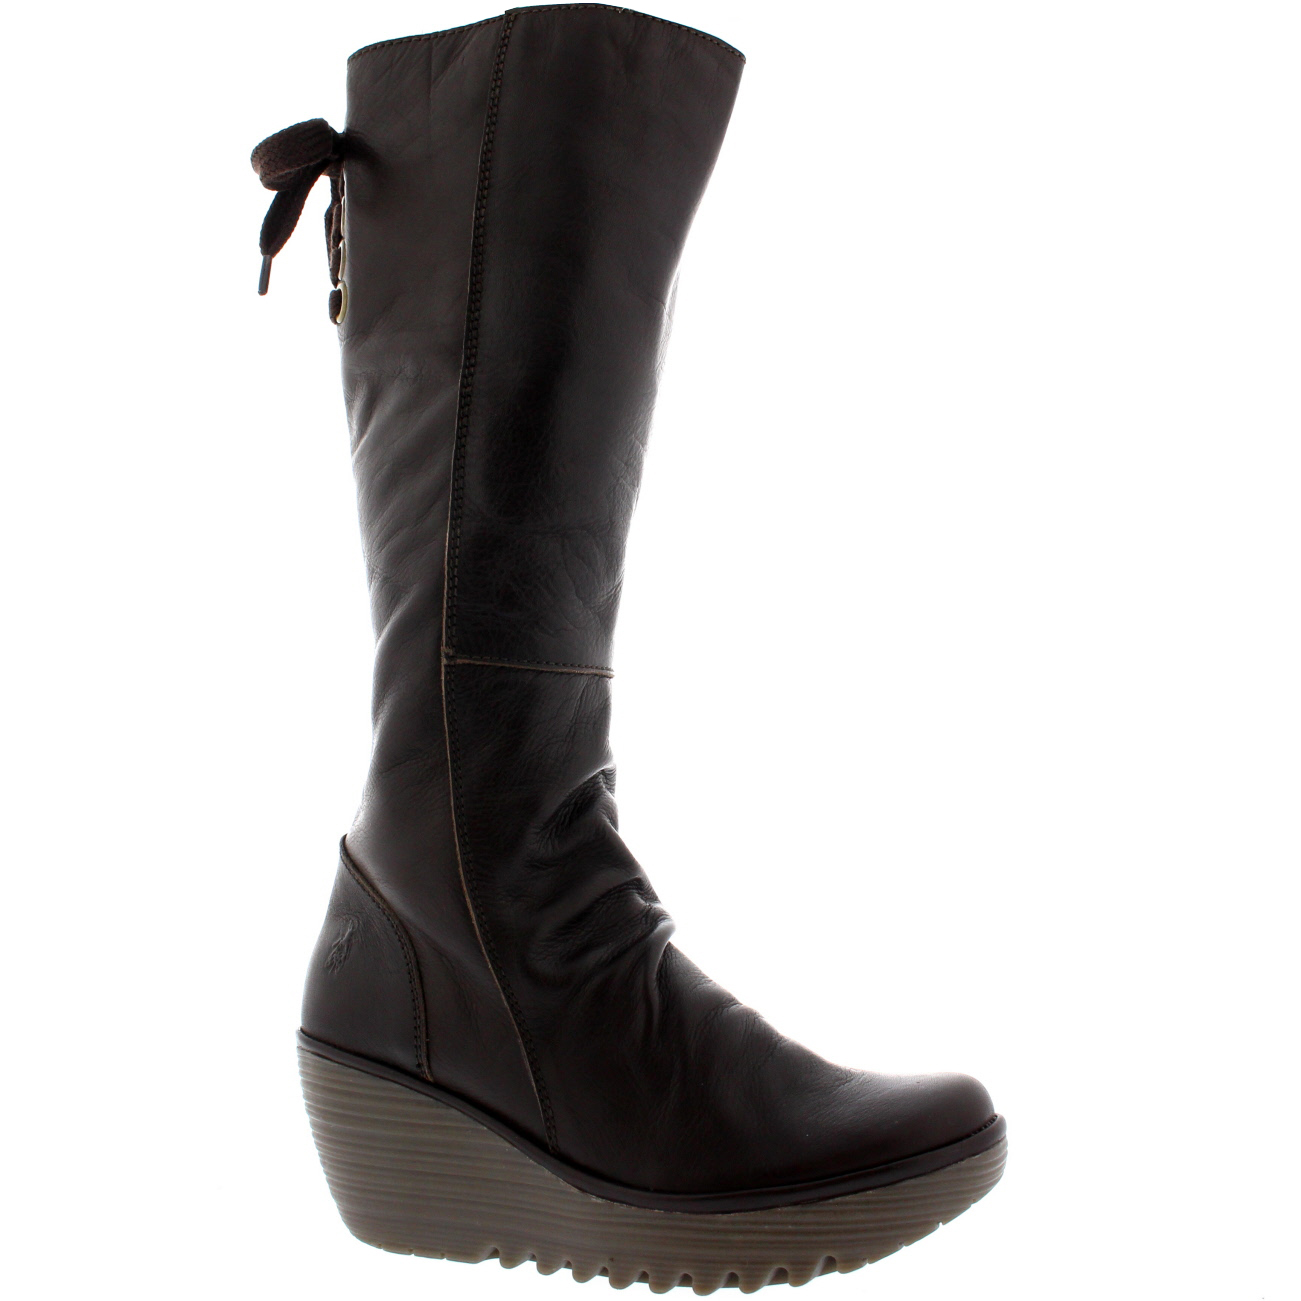 7b6089d19cc9 Womens Fly London Yust Knee High Wedge Heel Leather Snow Winter Boots US  5-11